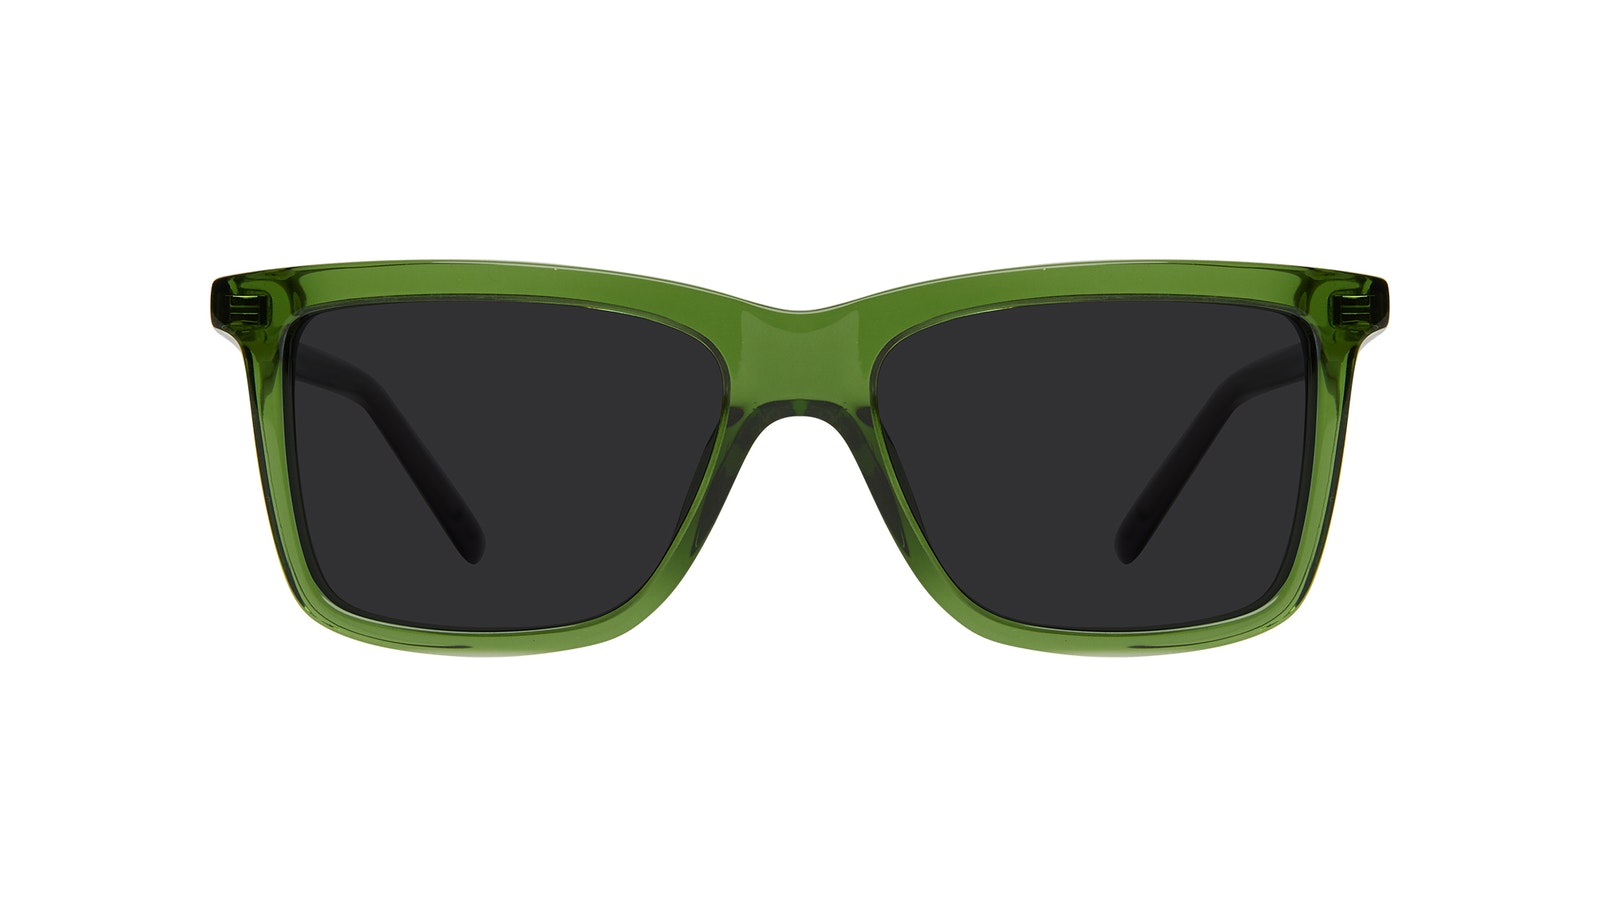 Affordable Fashion Glasses Square Sunglasses Kids Elite Junior Green Stone